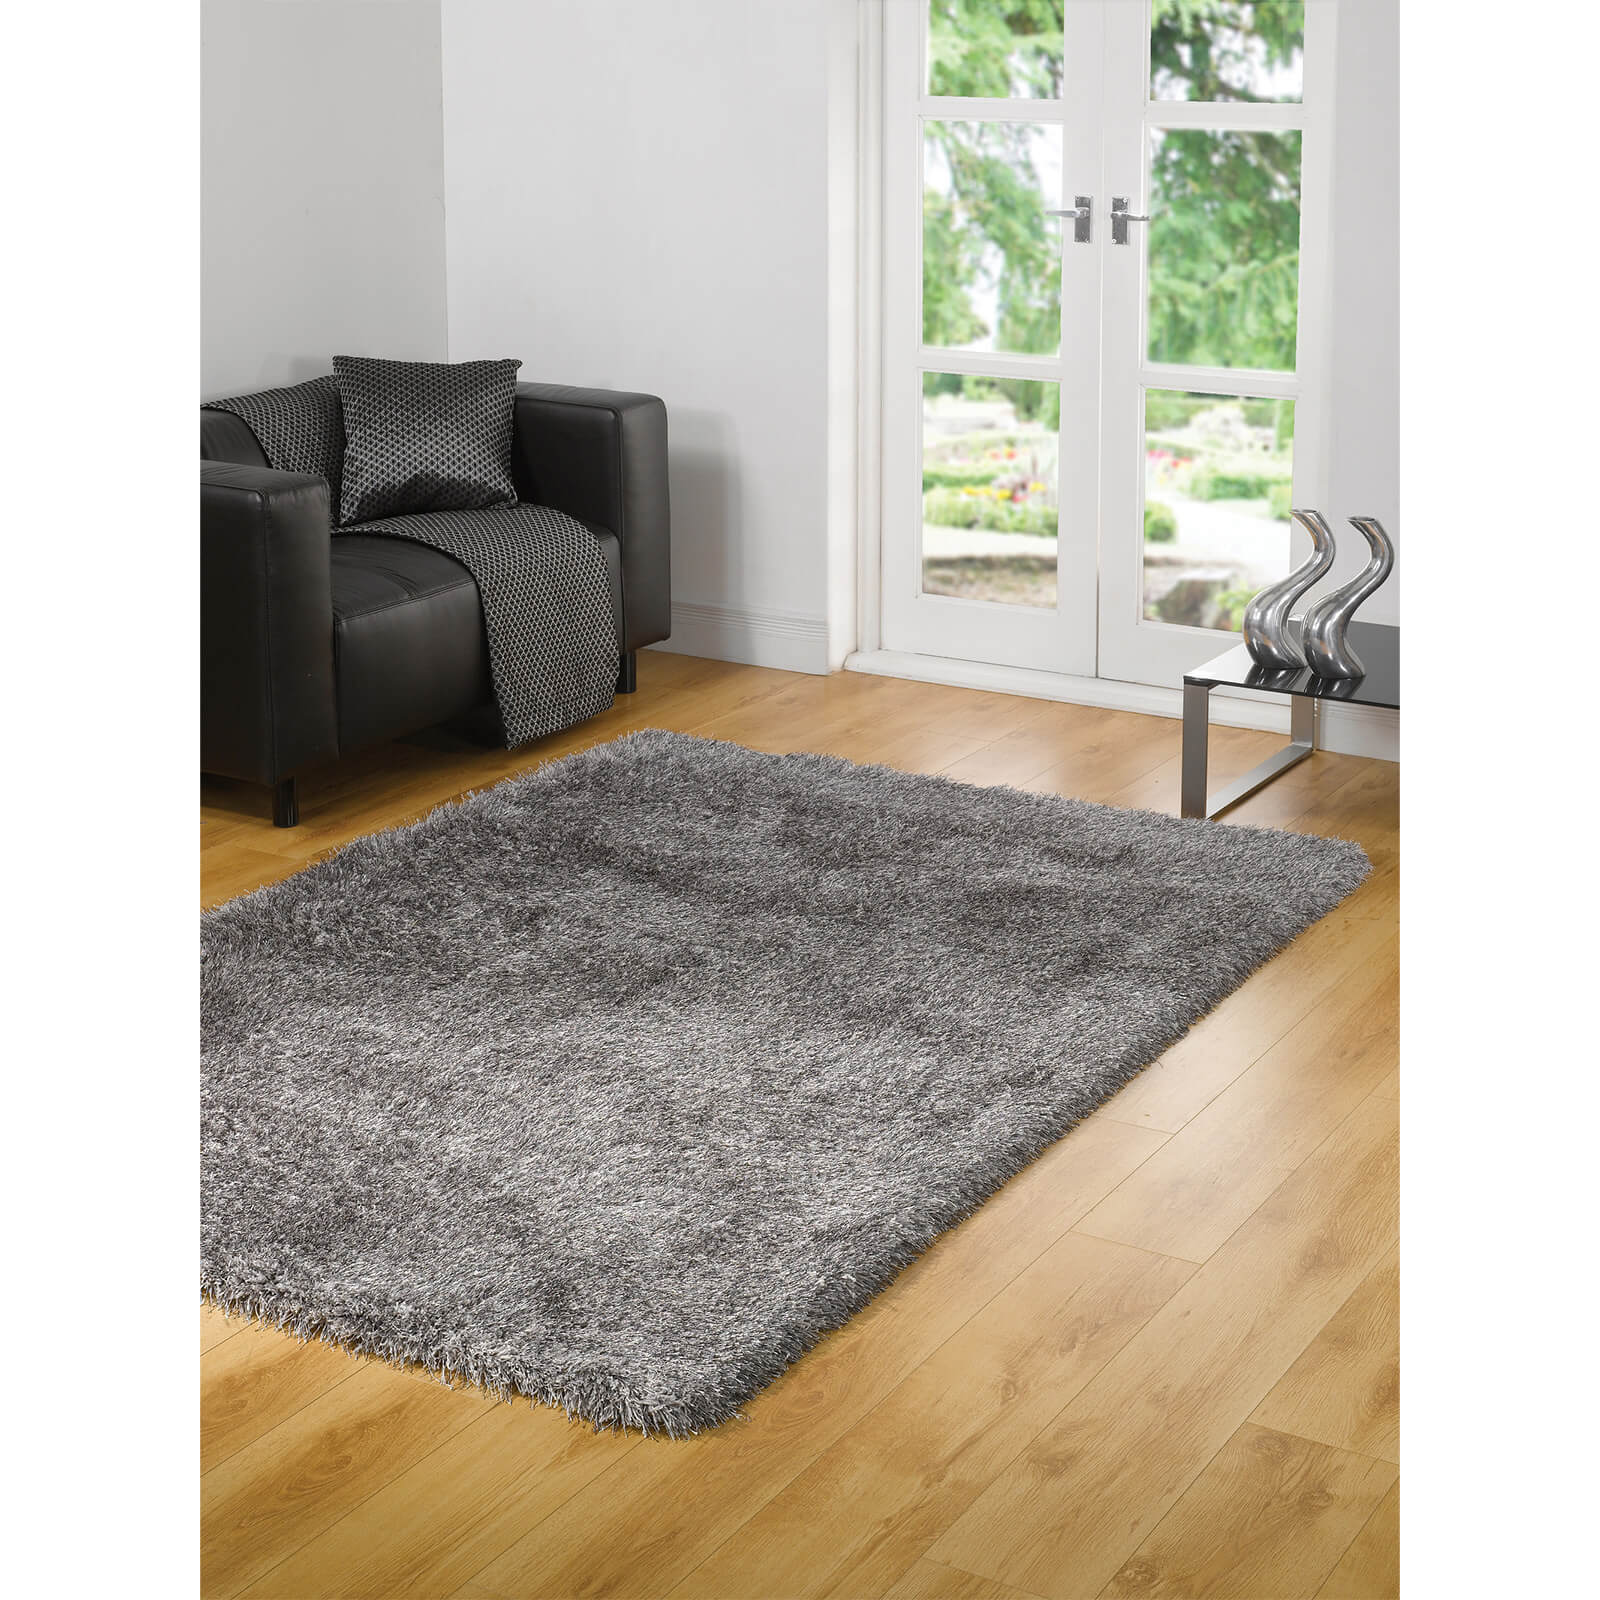 Flair Santa Cruz Rug - Summertime Grey Mix